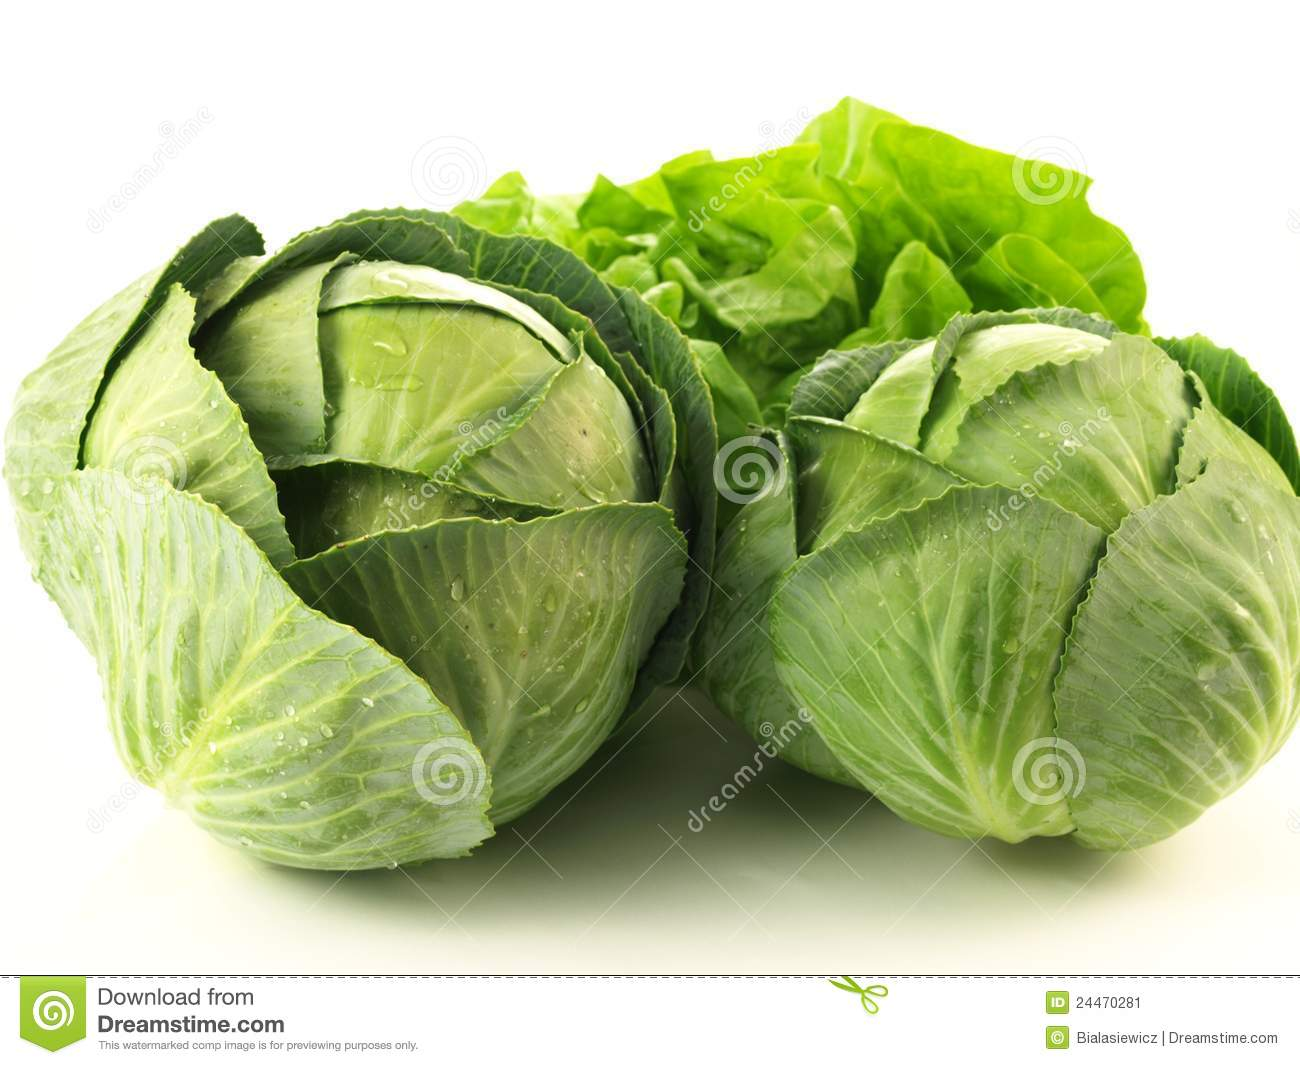 "cabbage vs lettuce Even more so than its cousin kale, the humble romaine lettuce packs high levels of folic acid,  rich sources of highly-available calcium and iron, cruciferous vegetables like the cabbage have the powerful ability to ""turn off"" inflammation markers thought to promote heart disease."